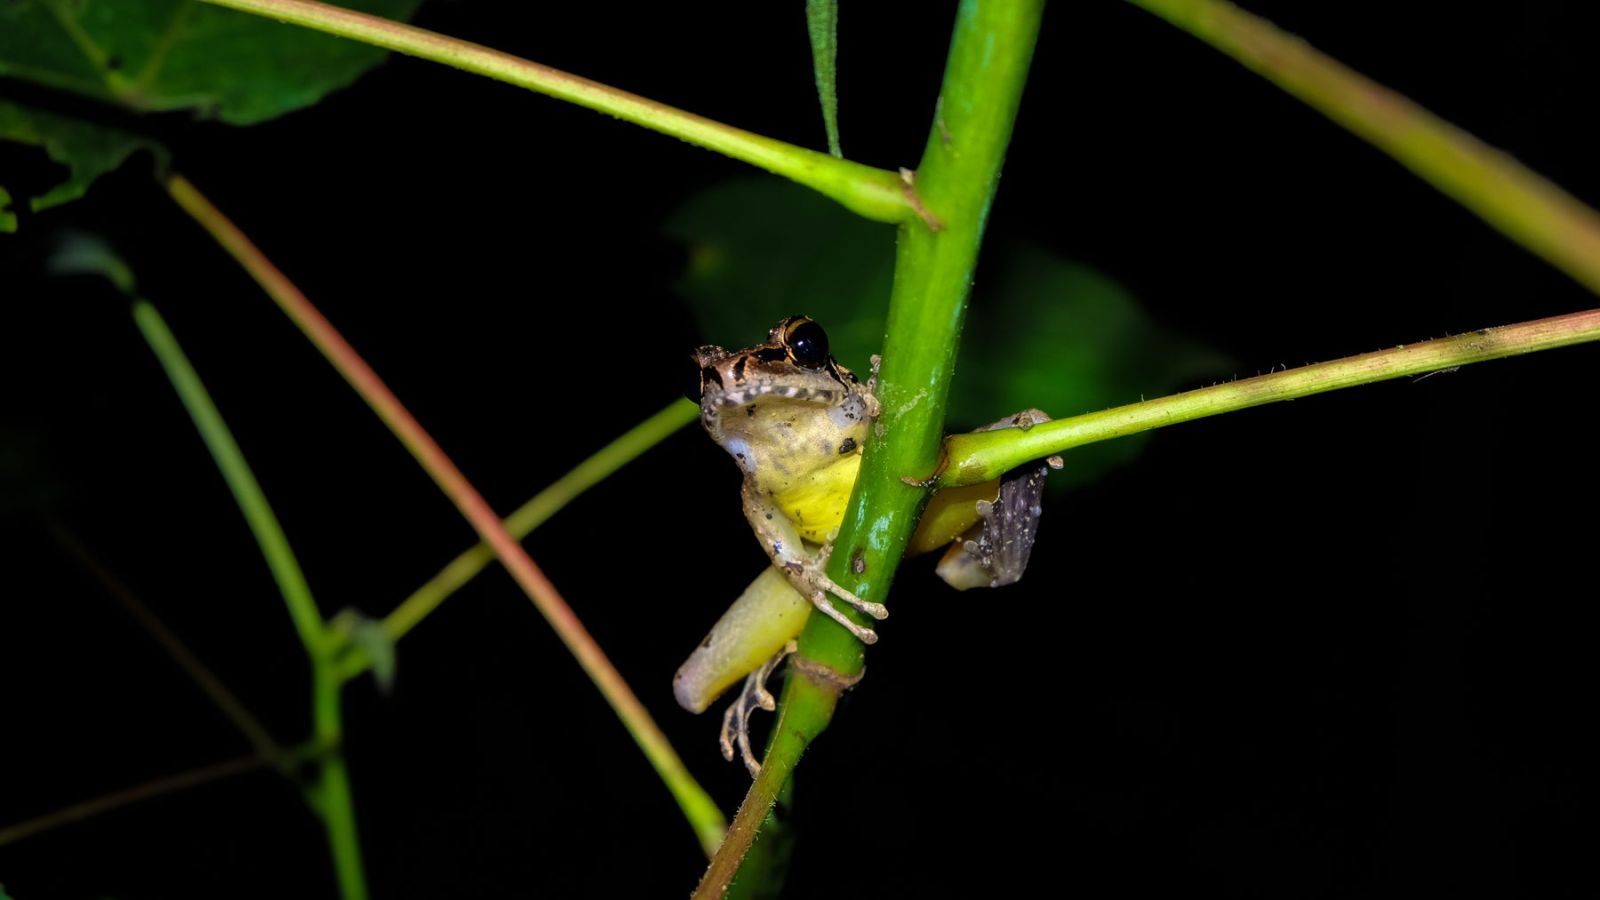 a photo of a tree frog in gunung leuser national park.